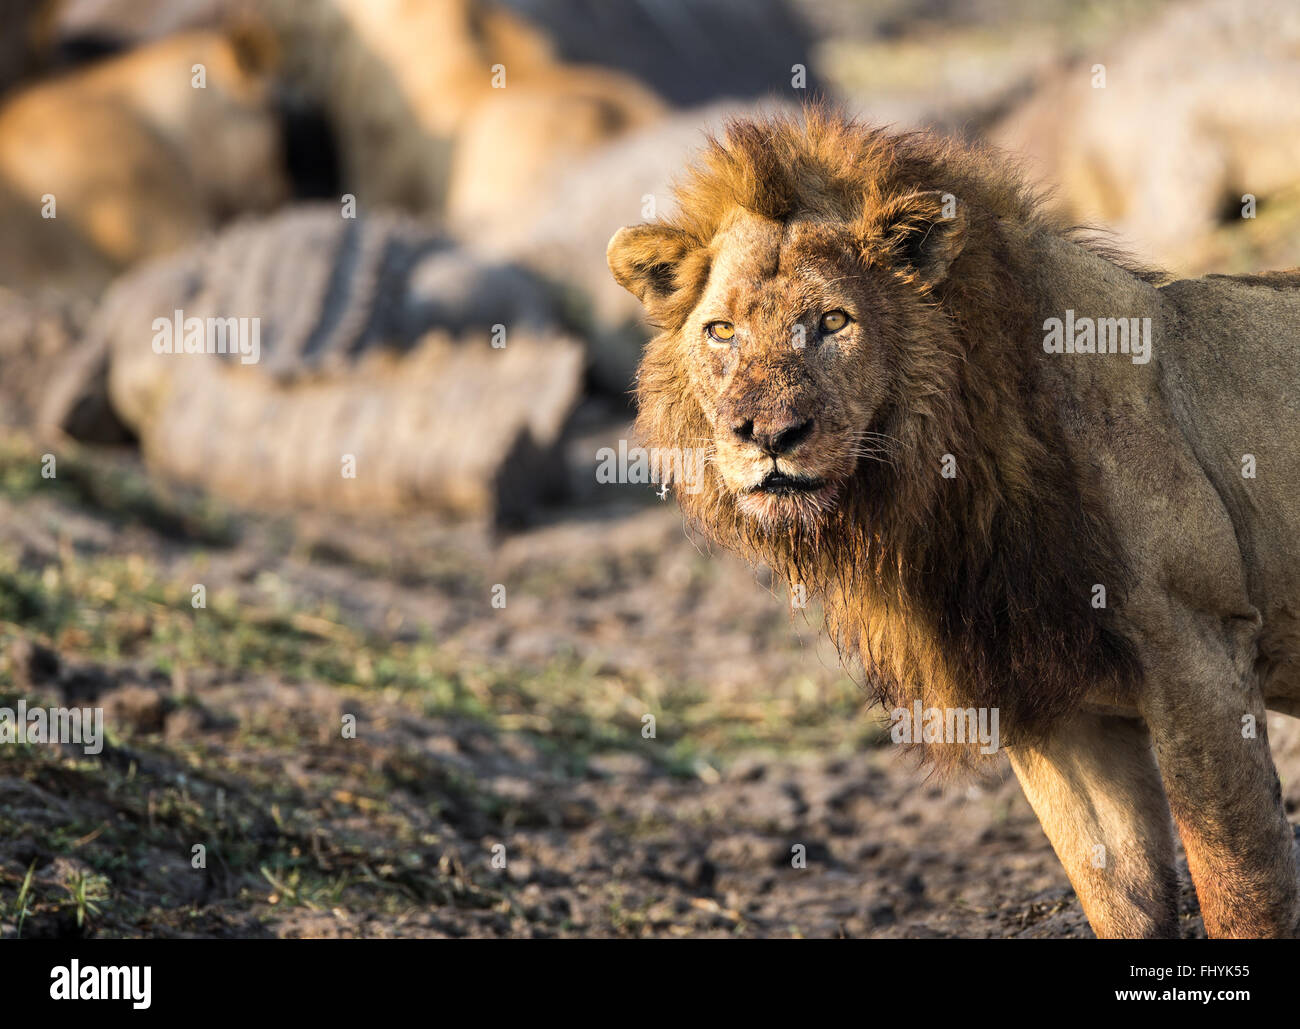 male lion standing in front of hippo kill with crocodile in background - Stock Image